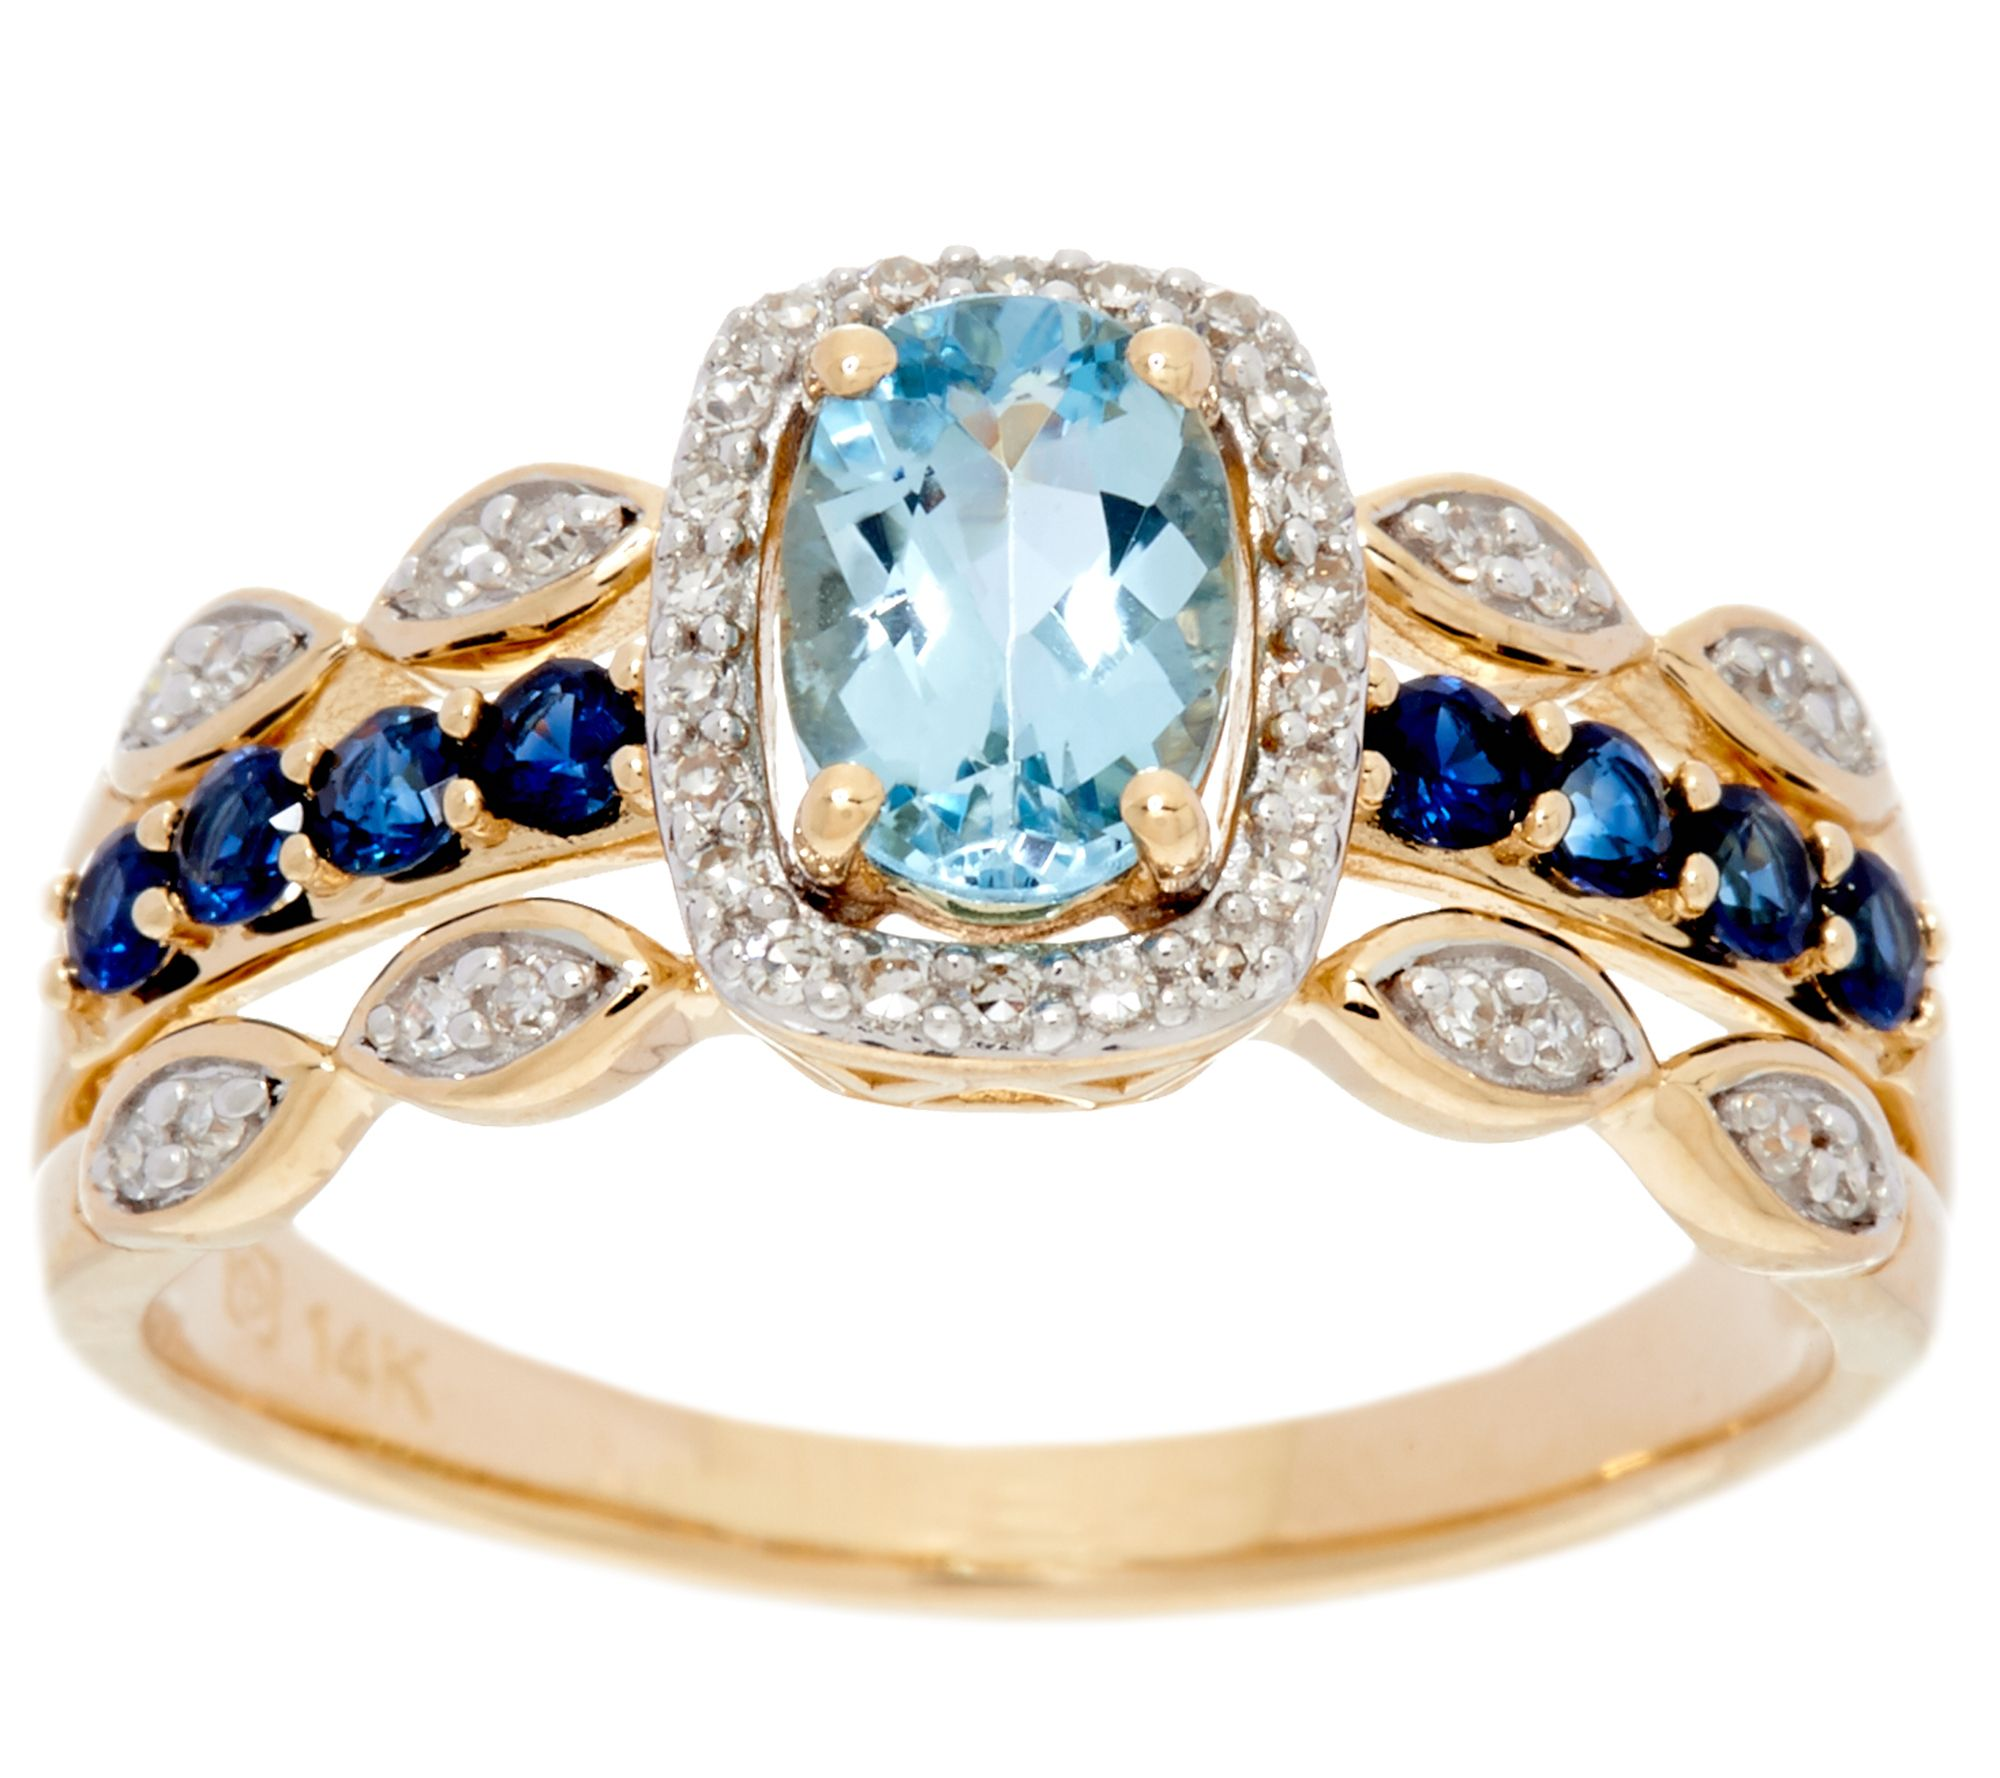 yellow ebth dsc gold aquamarine ixlib items sapphire rb ring